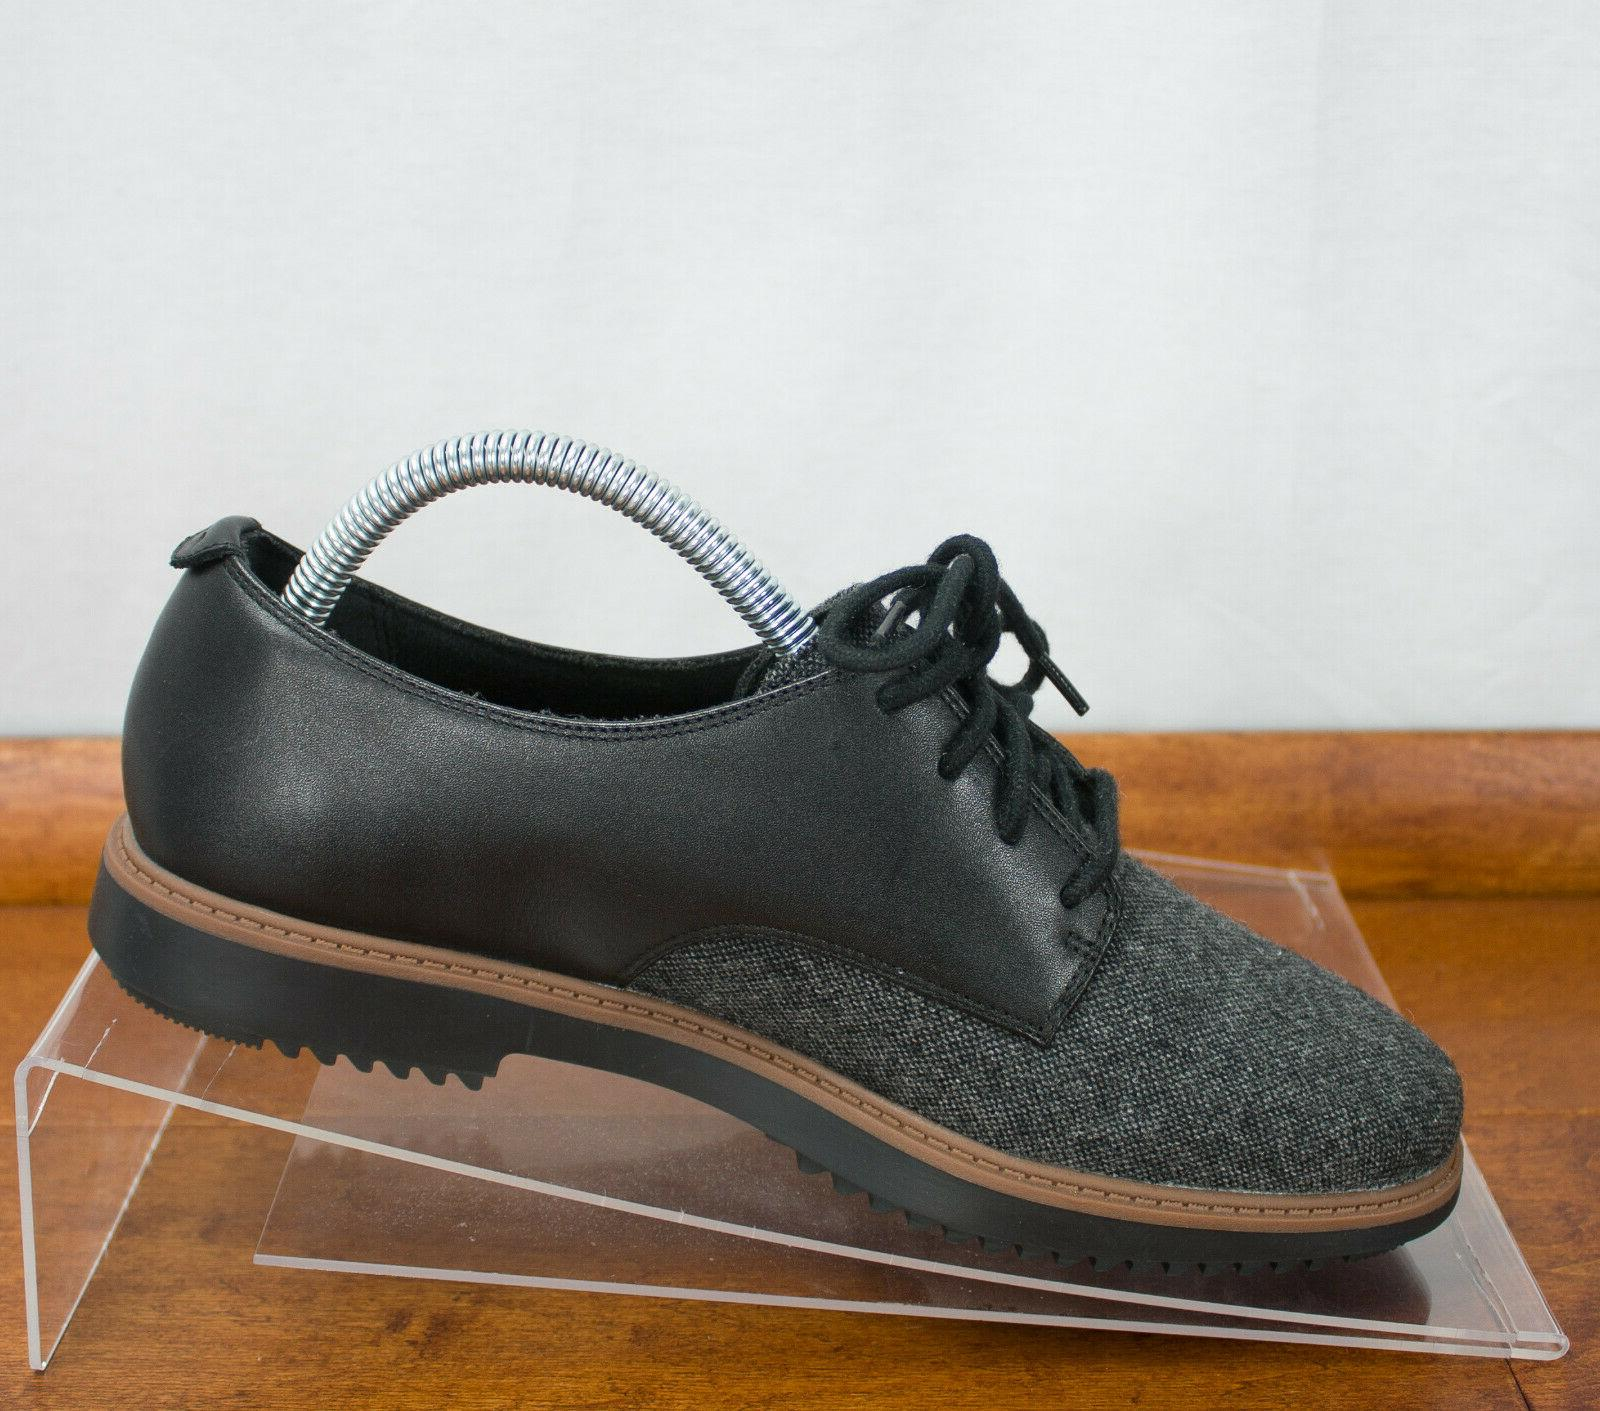 Clarks Raisie Leather Lace Up Oxford Shoes Size